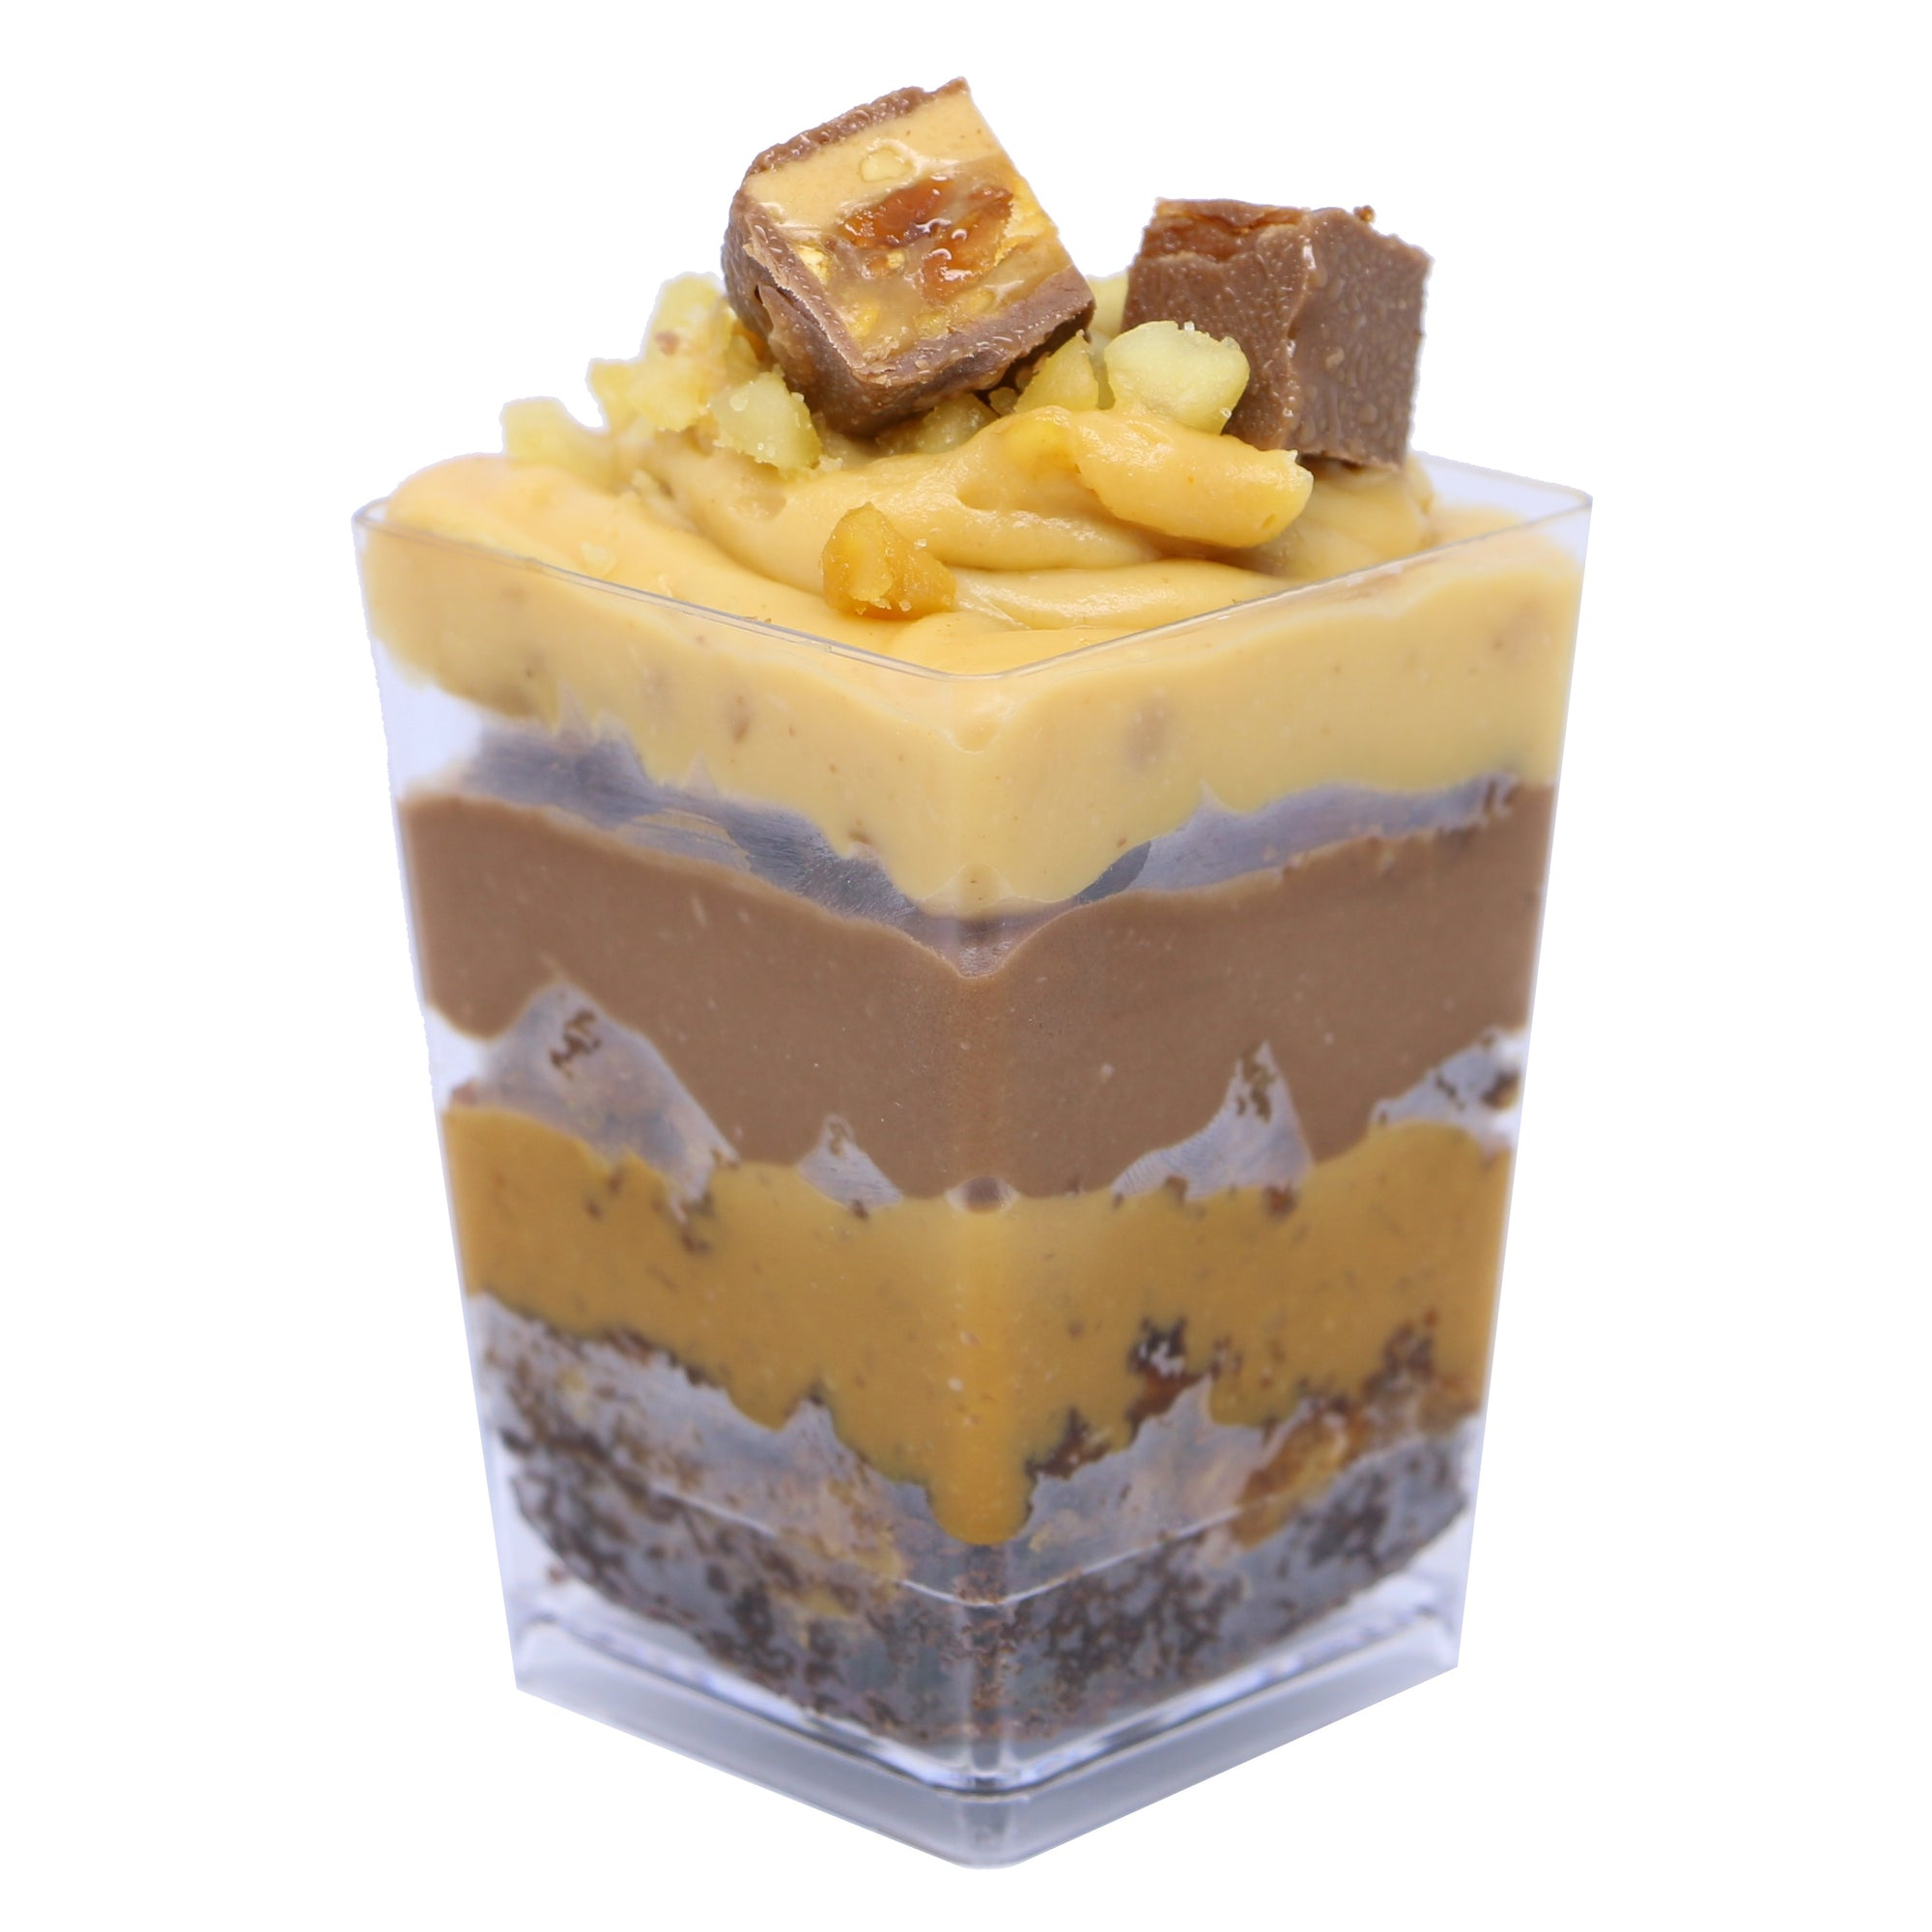 Dessert Cup - Snickers - Treats2eat - Wedding & Birthday Party Dessert Catering Near Me